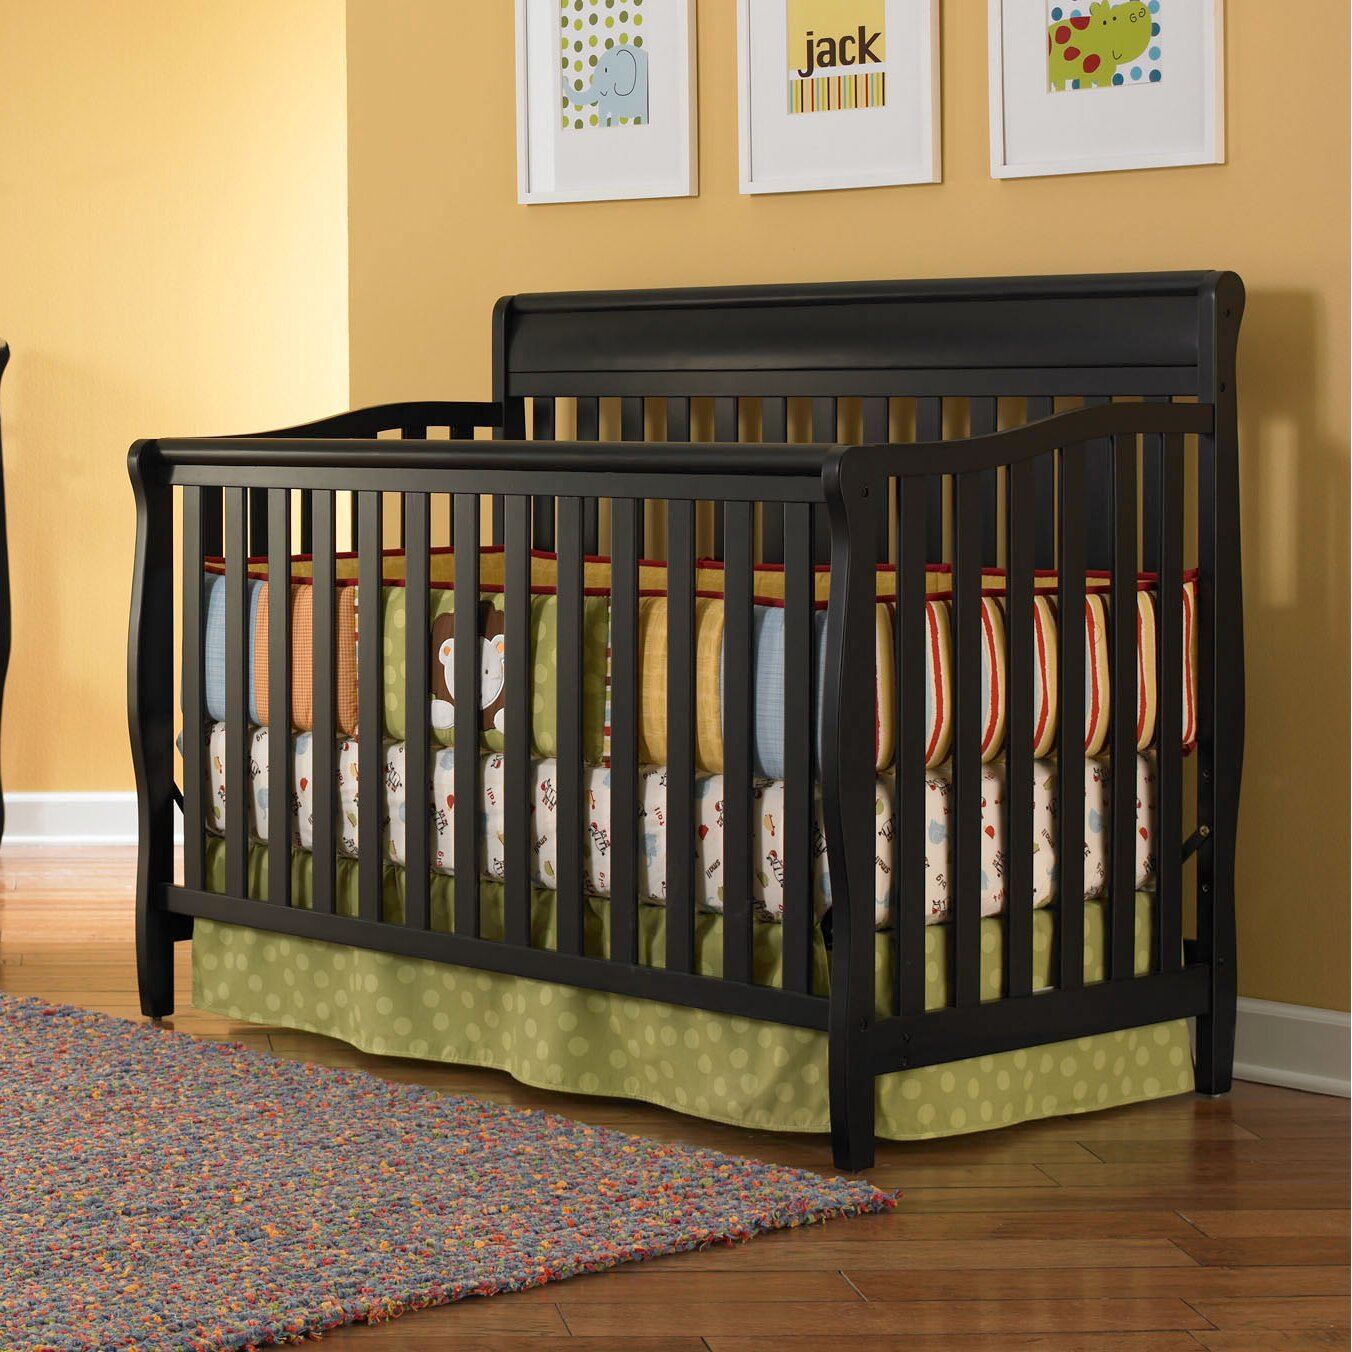 Used crib for sale edmonton - Graco Stanton 4 In 1 Convertible Crib